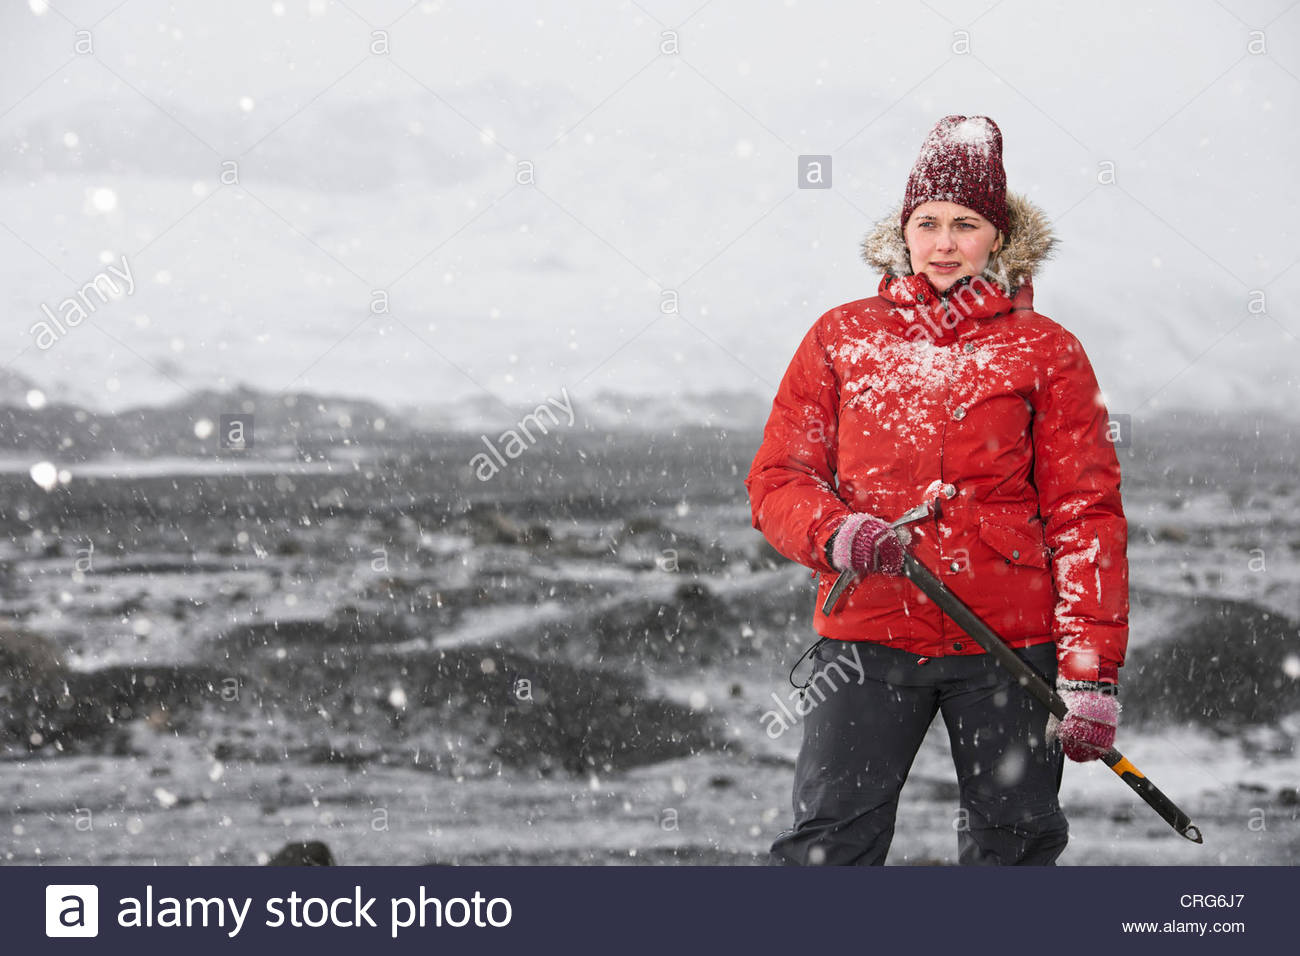 Hiker carrying pickax in snow - Stock Image